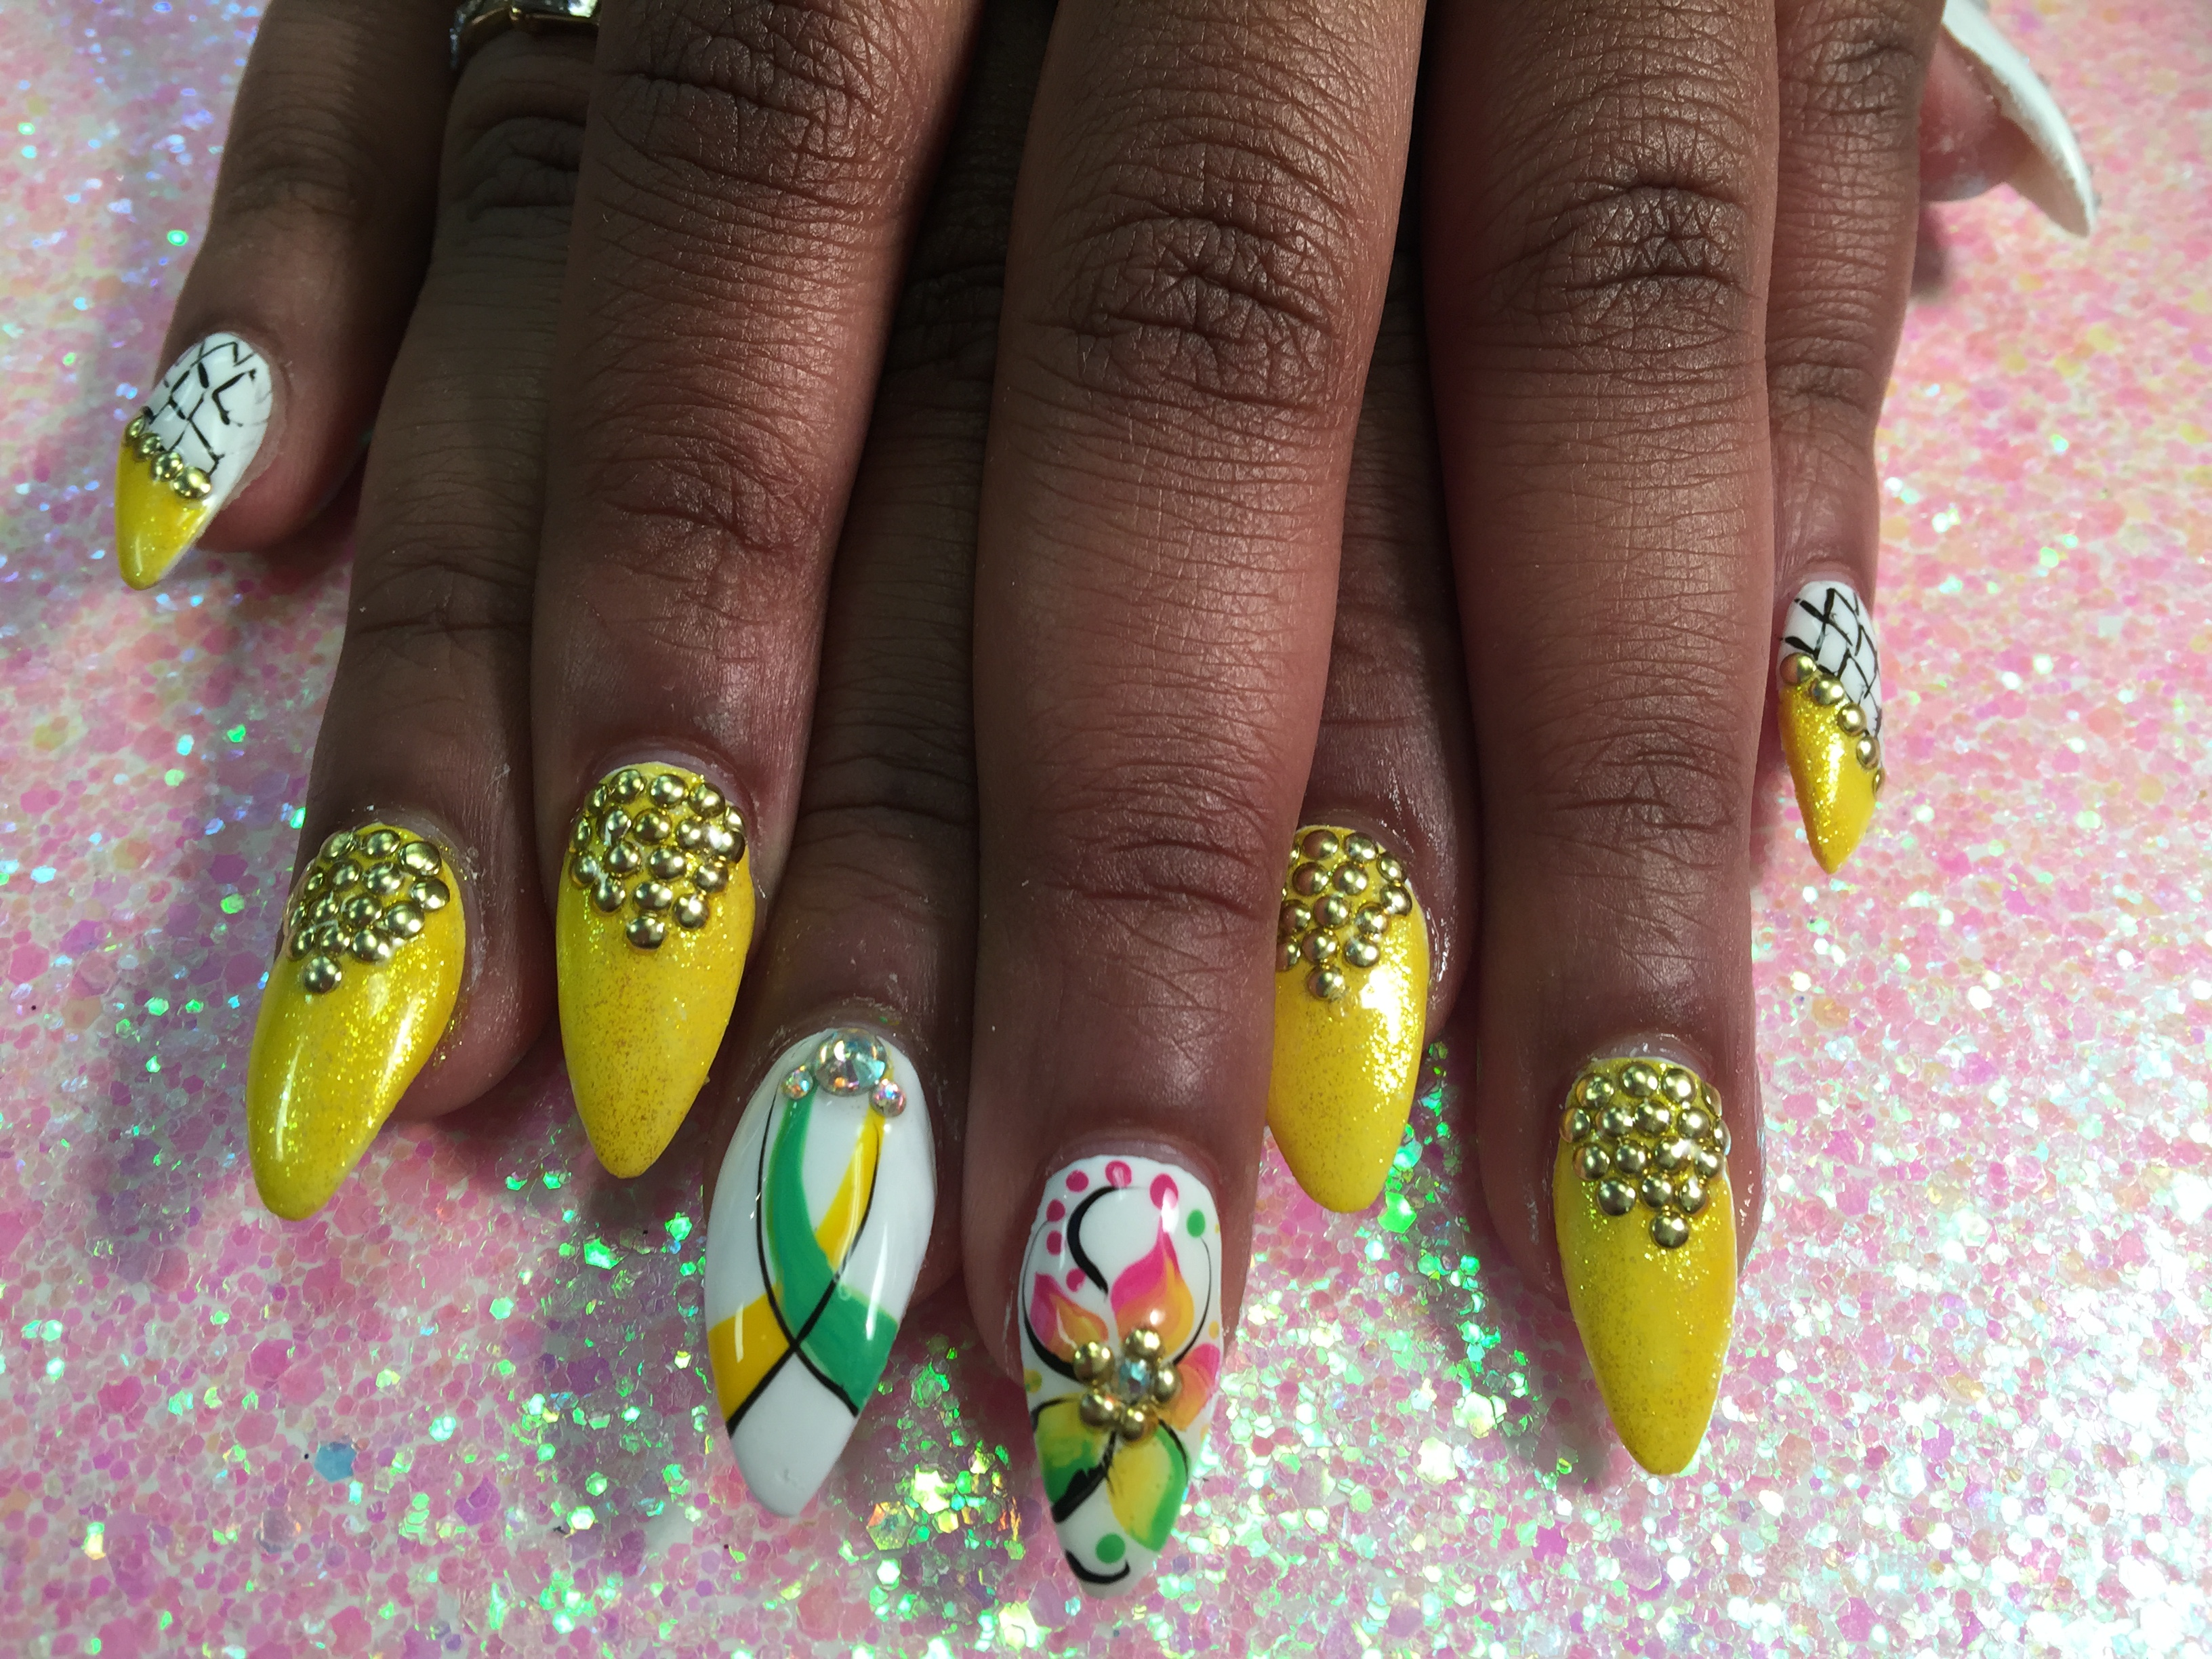 Jamaican Vacation, nail art designs by Top Nails, Clarksville TN ...